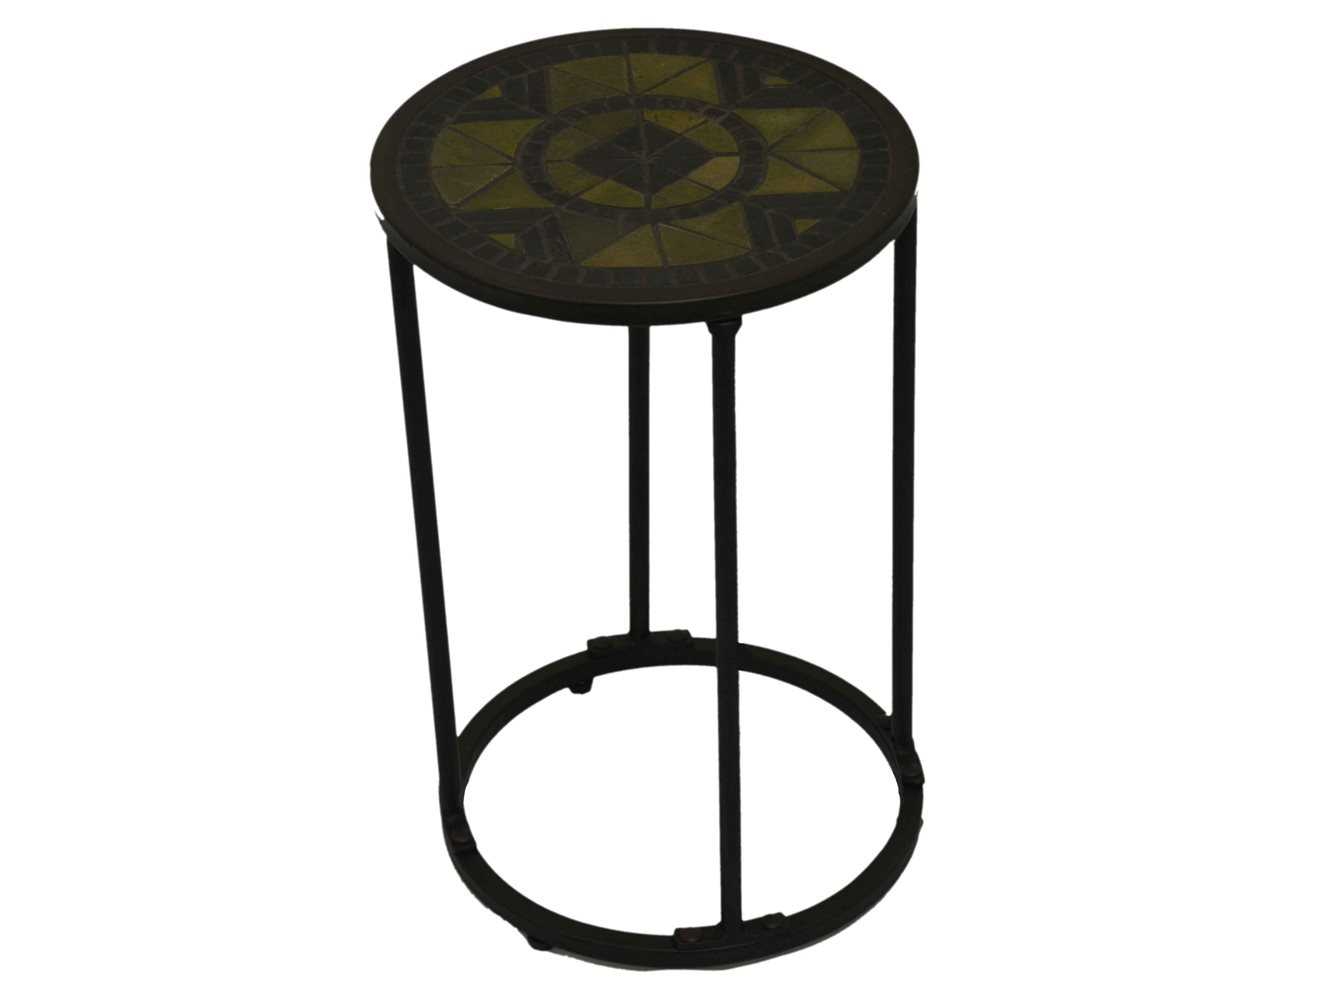 Paragon casual odell wrought iron 12 round flora accent for 12 inch round side table